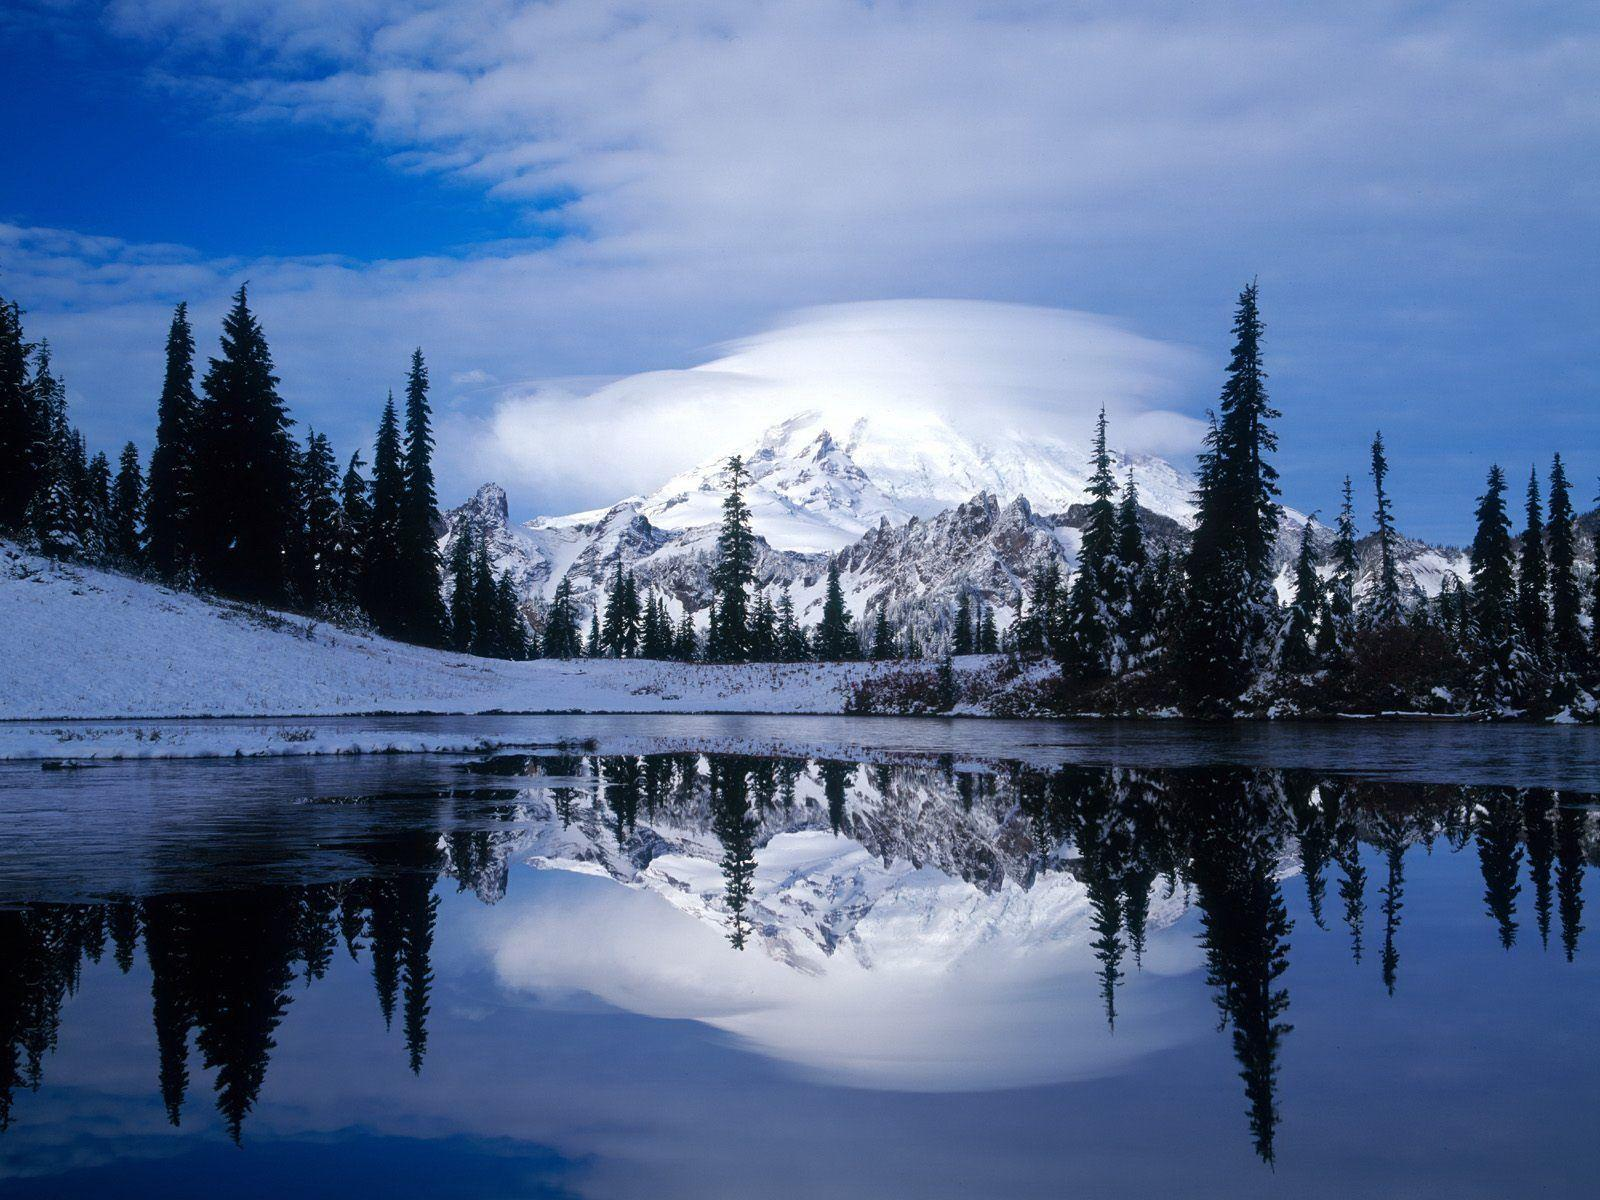 Snow Mountain Wallpapers Desktop